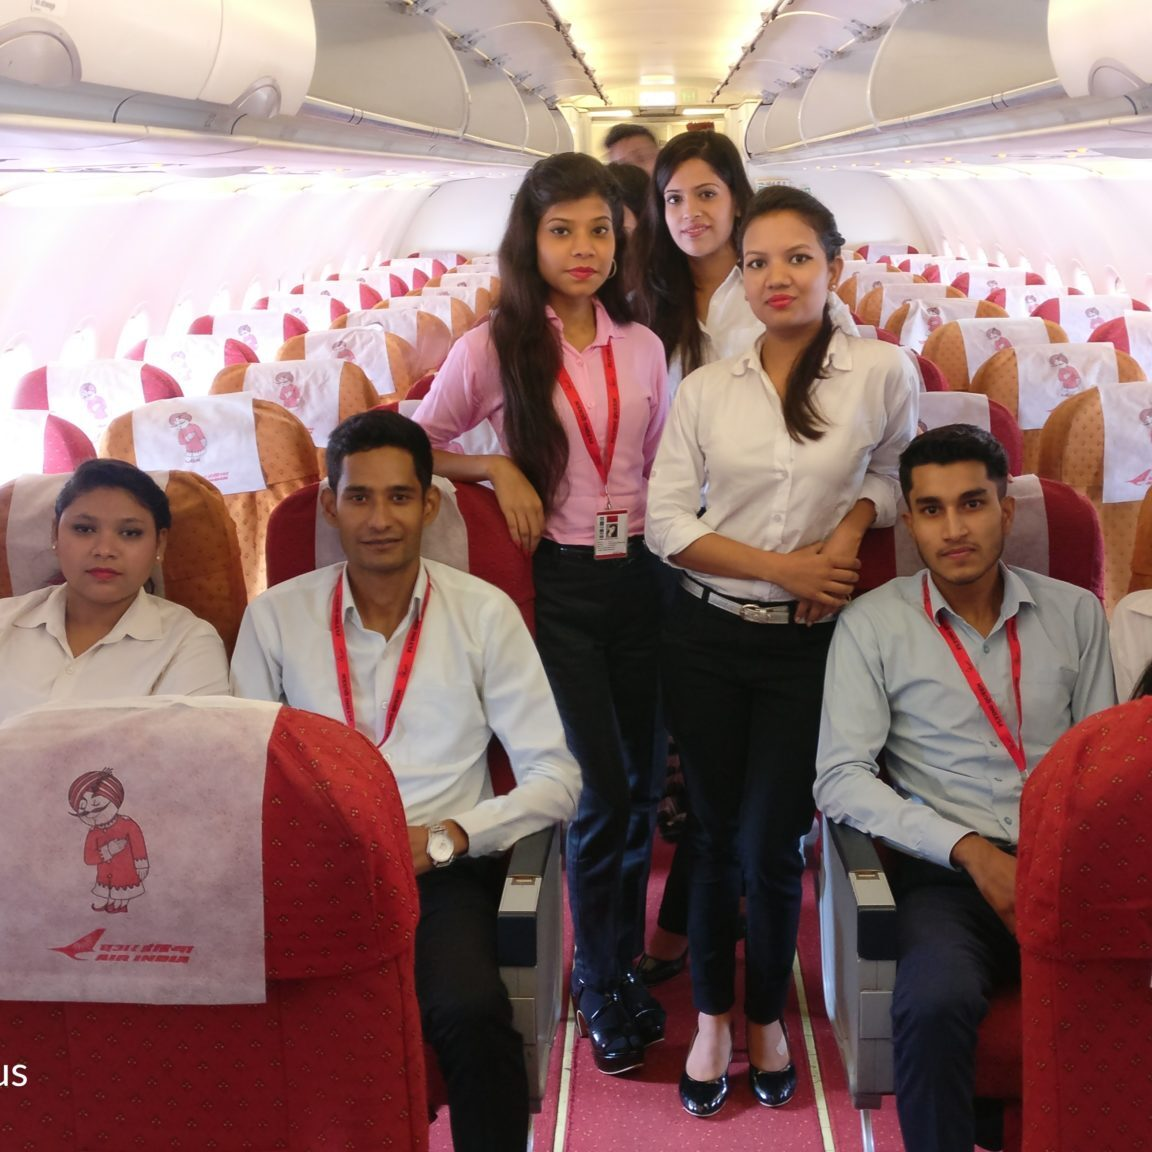 Want to be an Air Hostess, How to become an Air Hostess, Air Hostess Training Course, Flying Queen Air Hostess Institute in Delhi, Flying Queen Cabin Crew Institute, Diploma in Air Hostess Course -Flying Queen Air Hostess Academy Pitampura Rohini Delhi, Air Hostess Course after XII, Cabin Crew Course after XII Delhi Pitampura